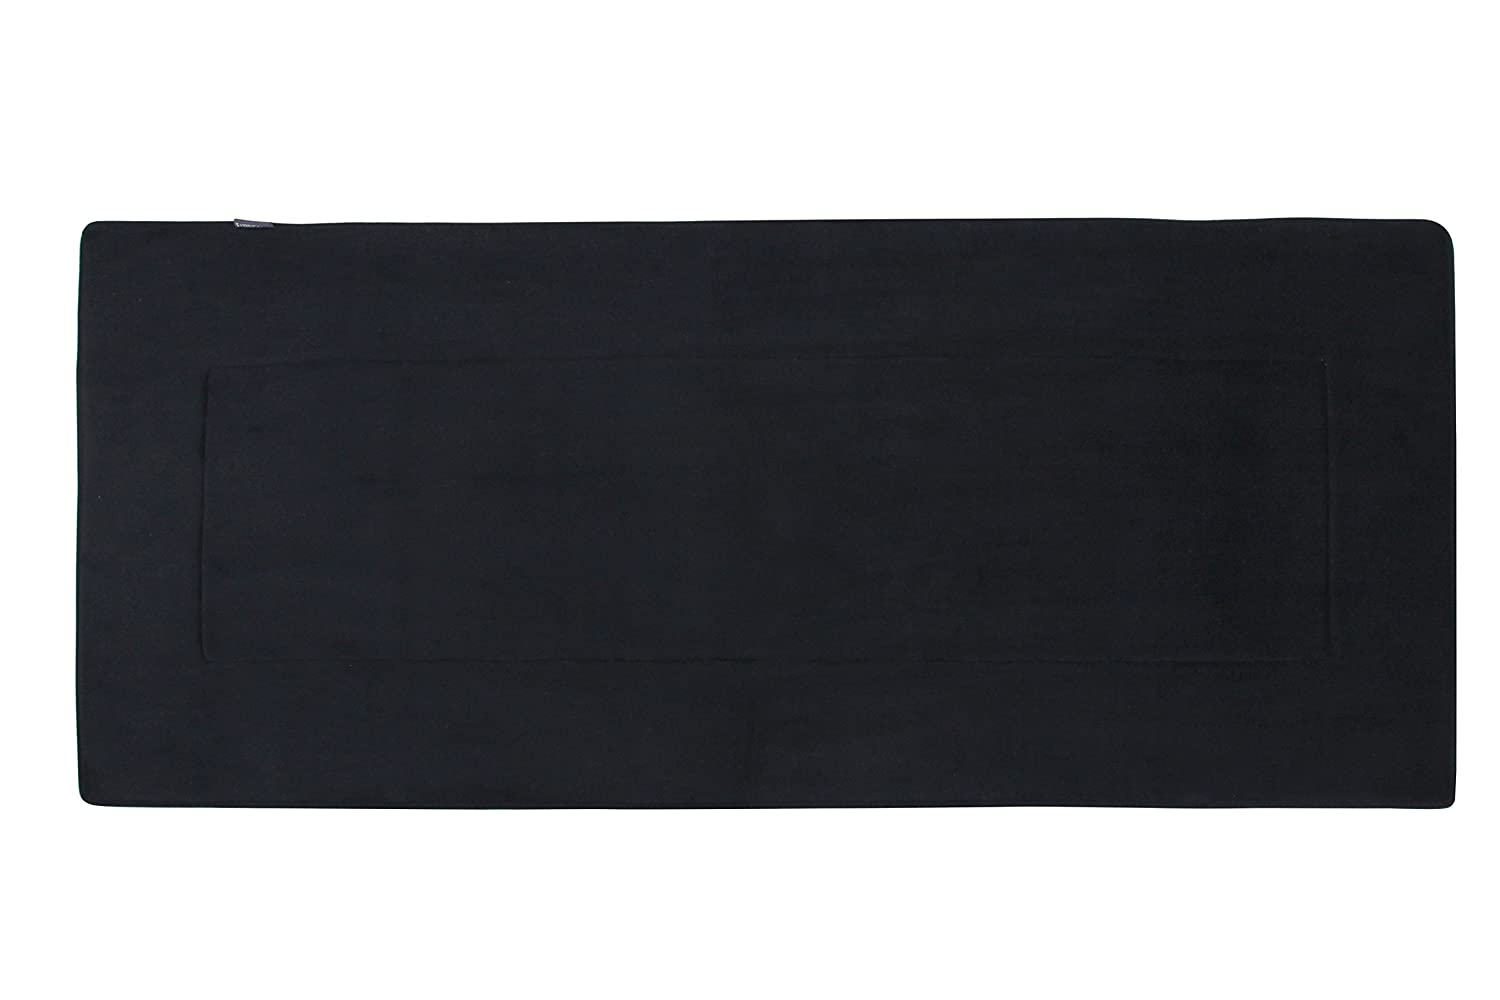 FABBRICA HOME Ultra-Soft Extra-Thick Memory Foam Runner (2 ft x 5 ft, Black)